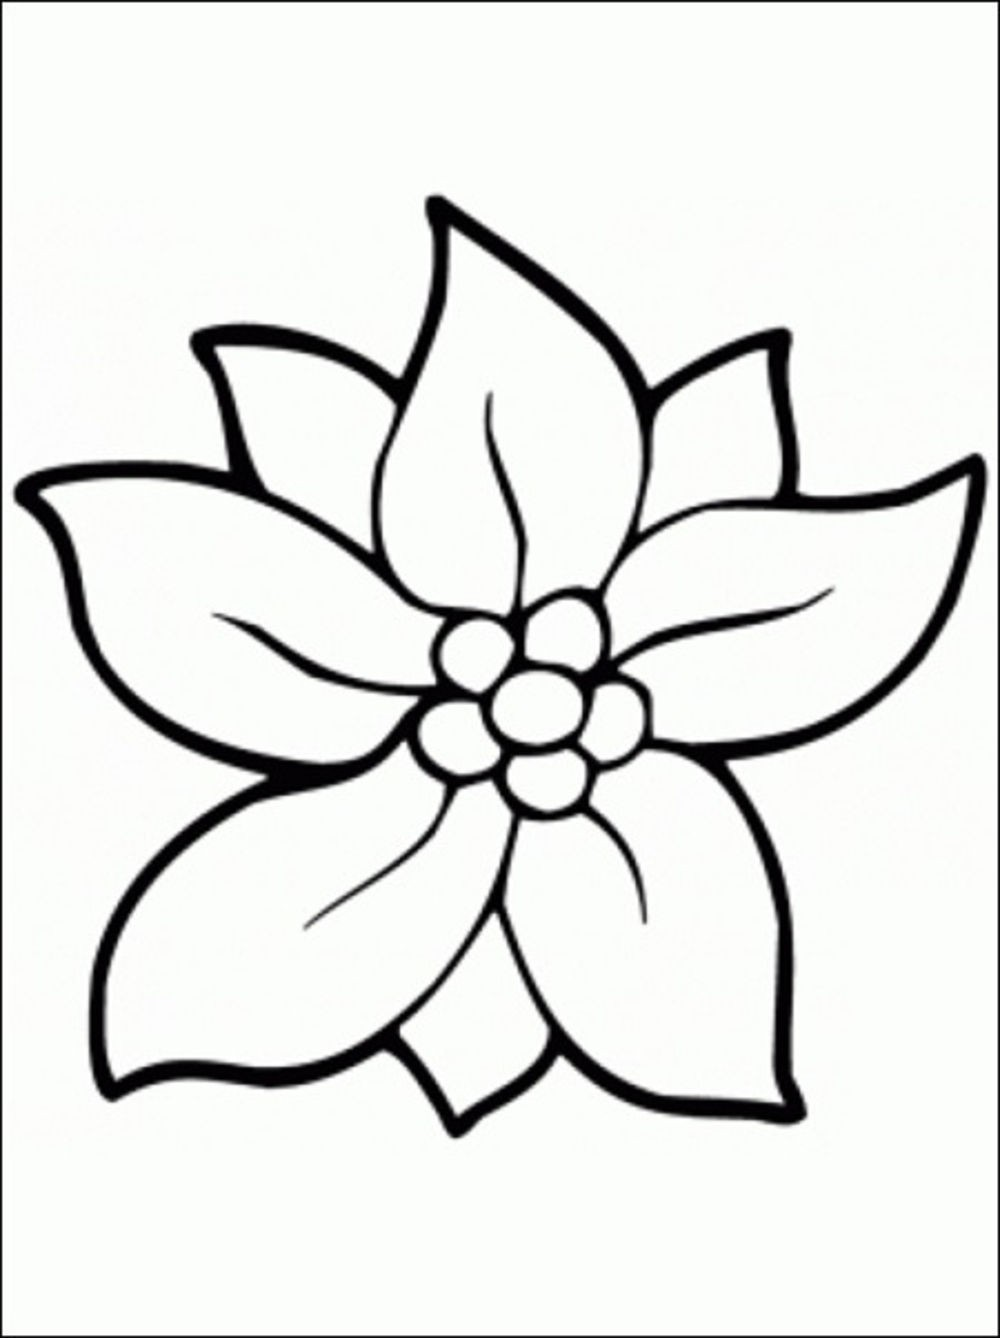 Flower Coloring Pages For Kids at GetDrawings.com   Free for ...